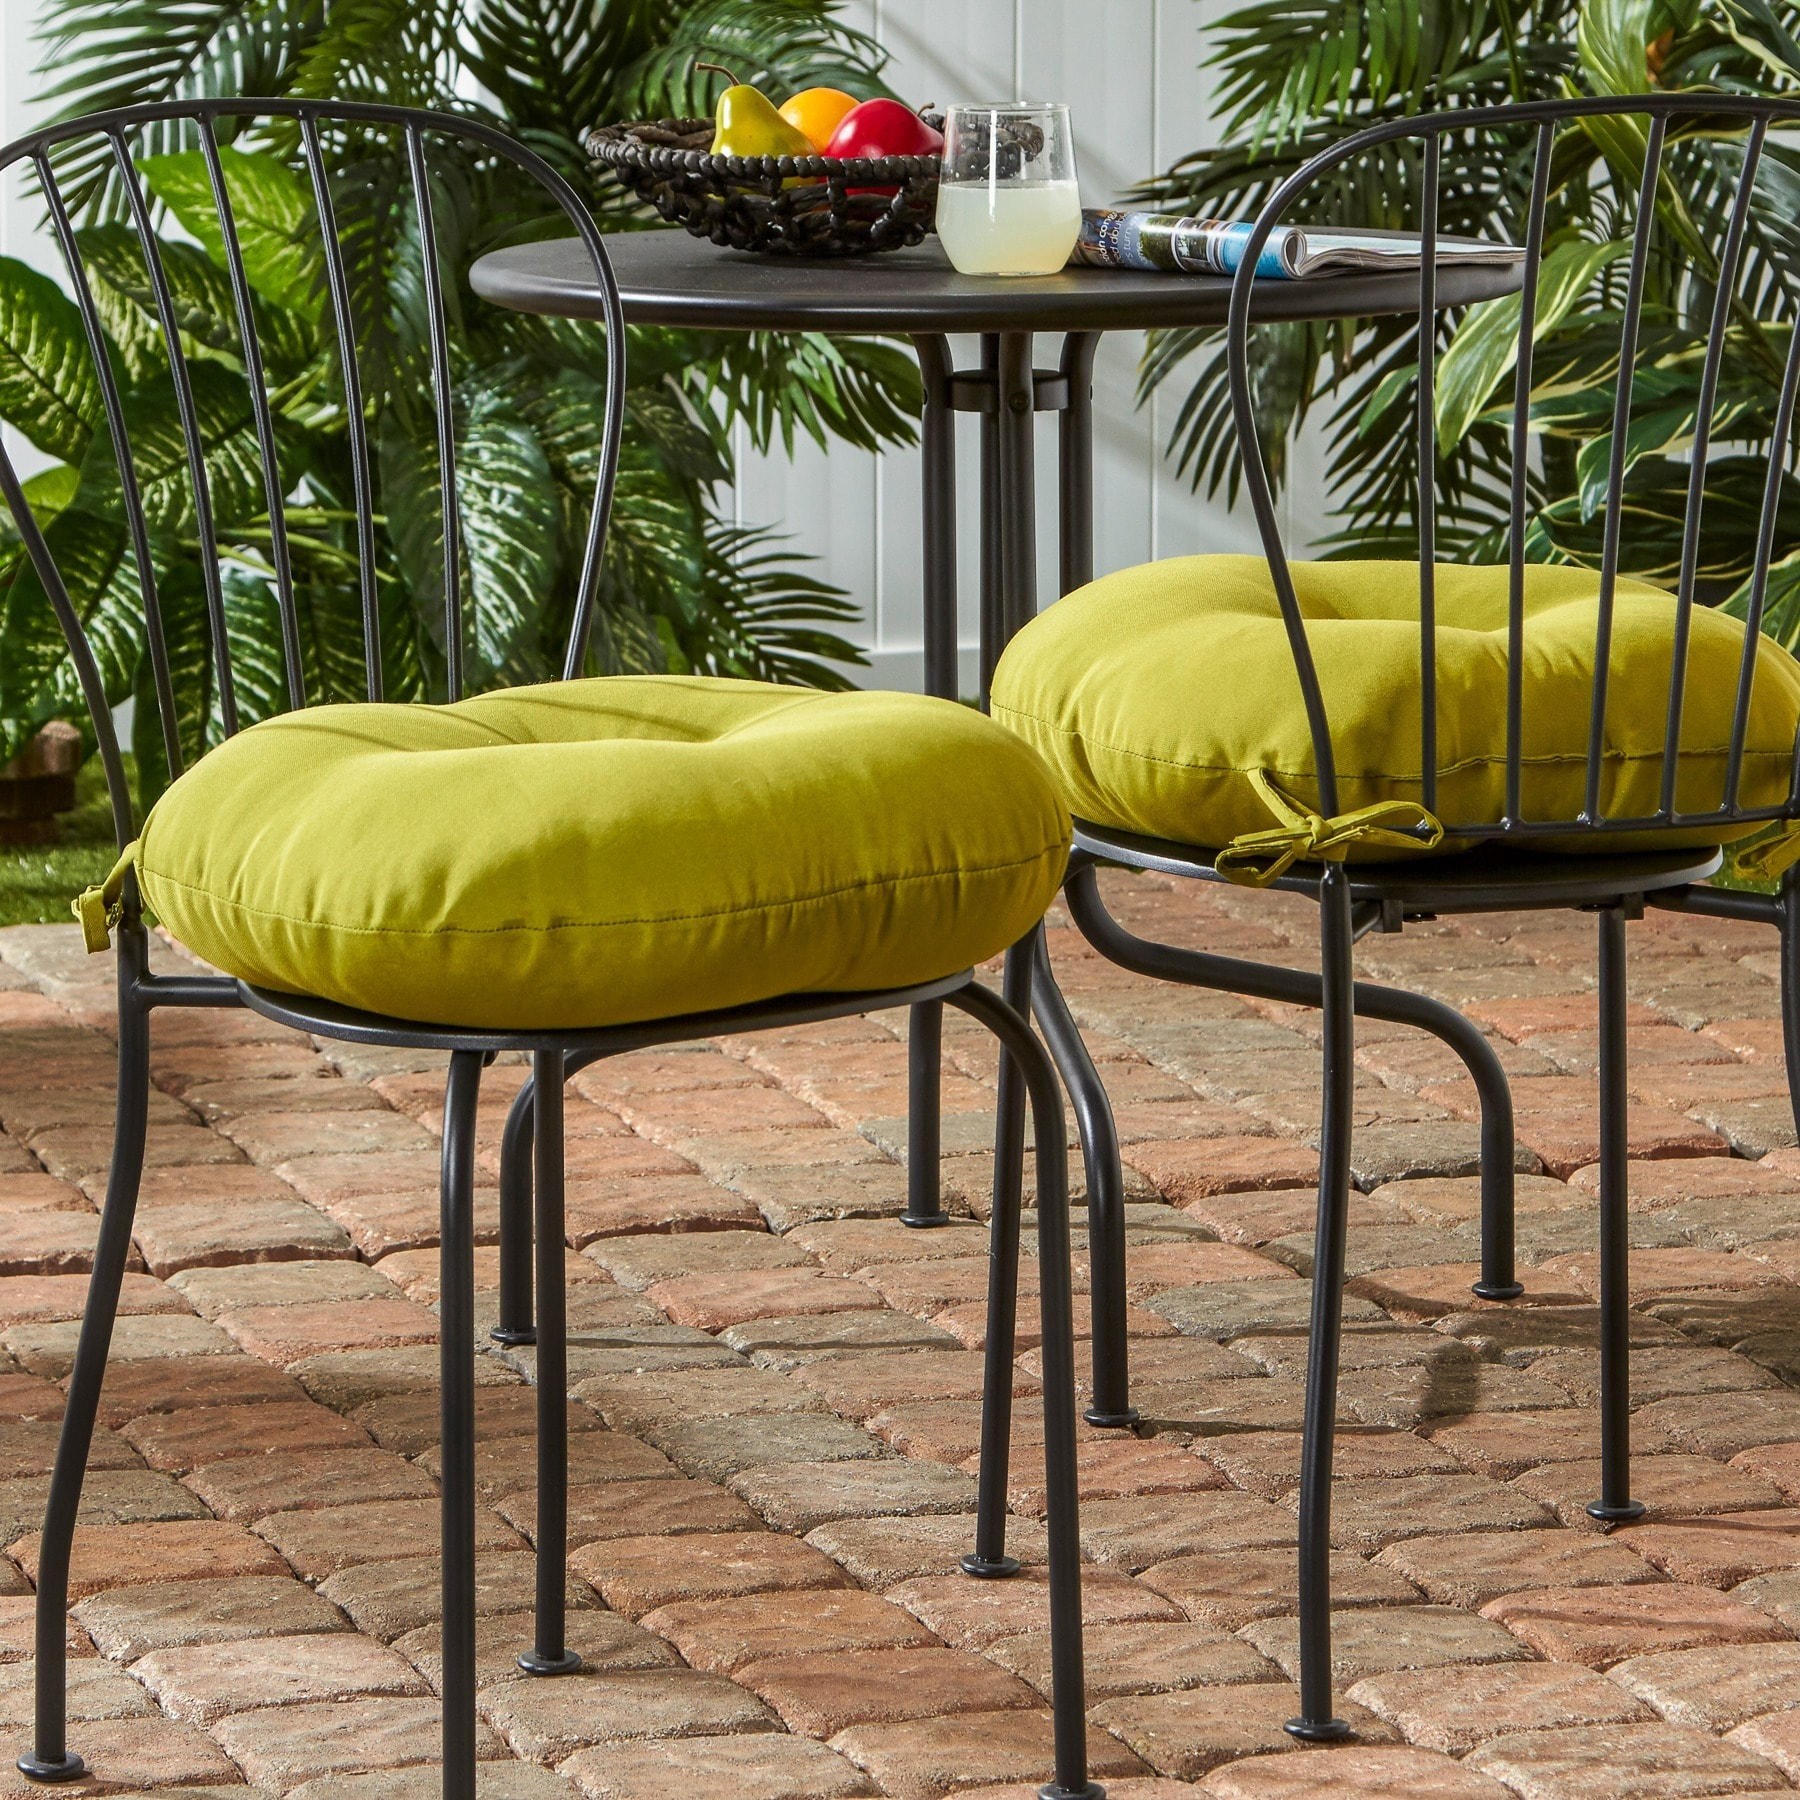 Greendale Home Fashions 18 Inch Round Outdoor Kiwi Bistro Chair Cushion  (Set Of 2